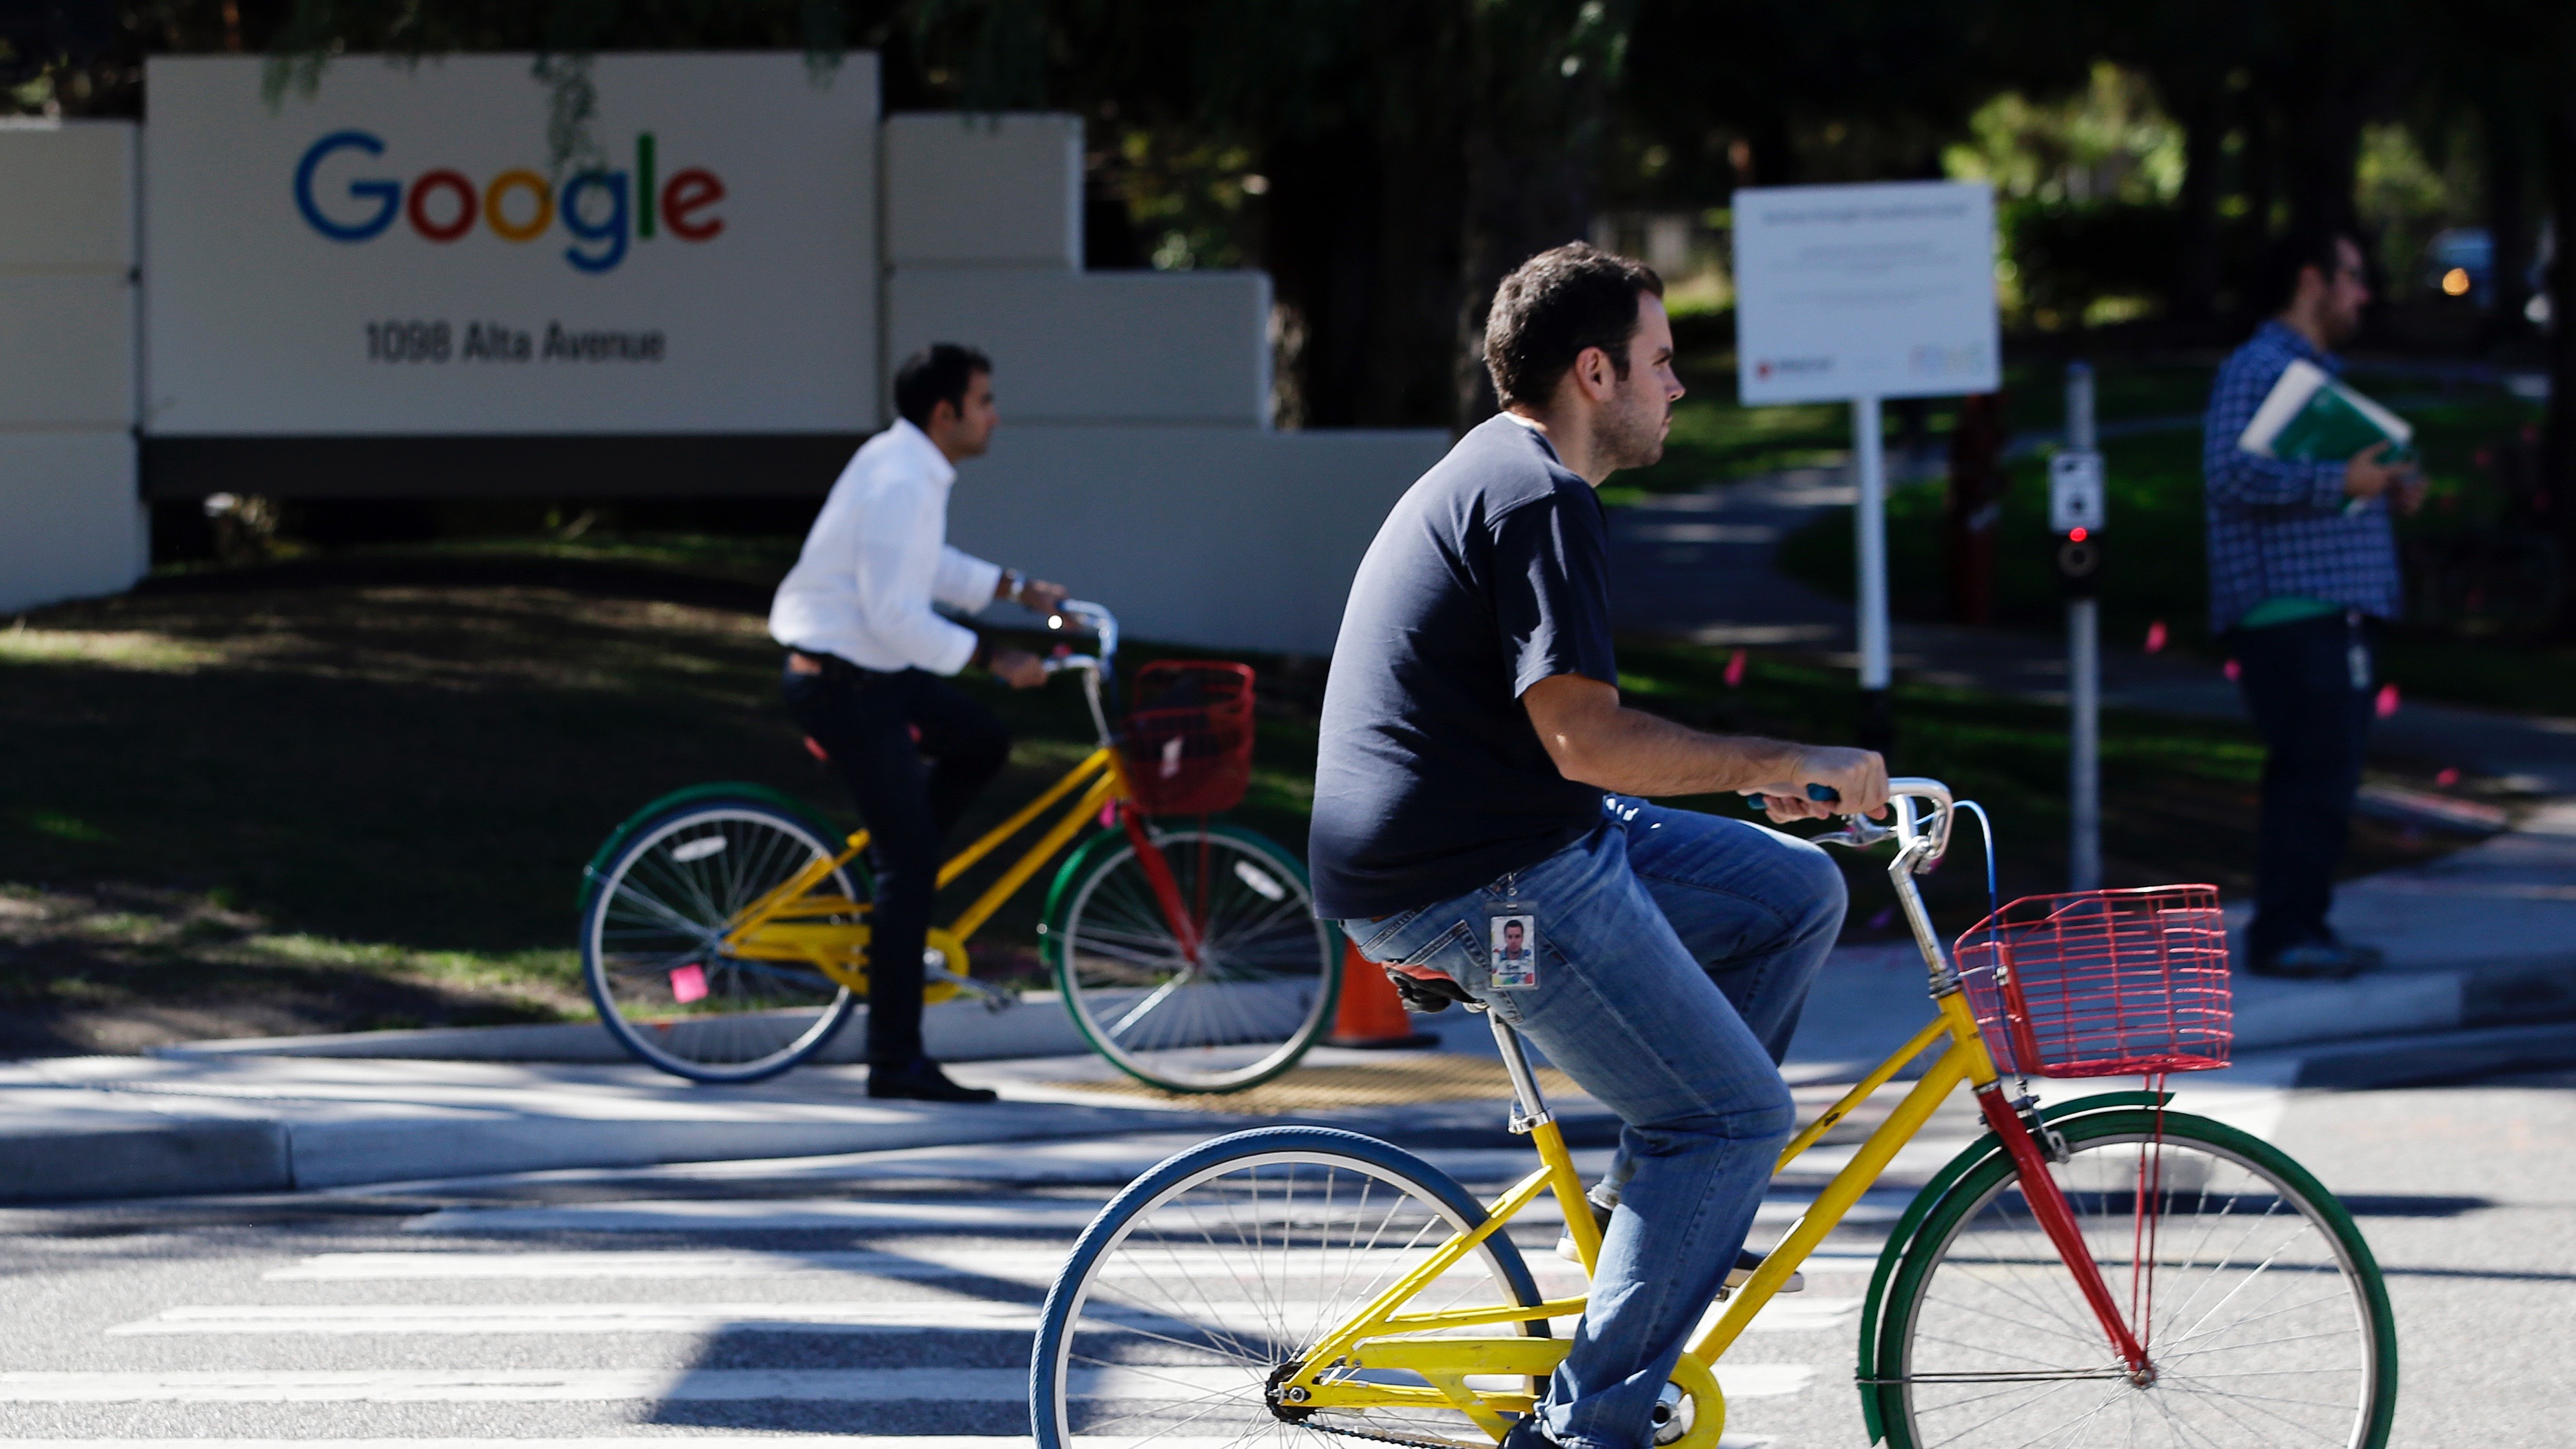 In this Oct. 20, 2015 photo, employees ride company bicycles outside Google headquarters in Mountain View, Calif. (AP Photo/Marcio Jose Sanchez)